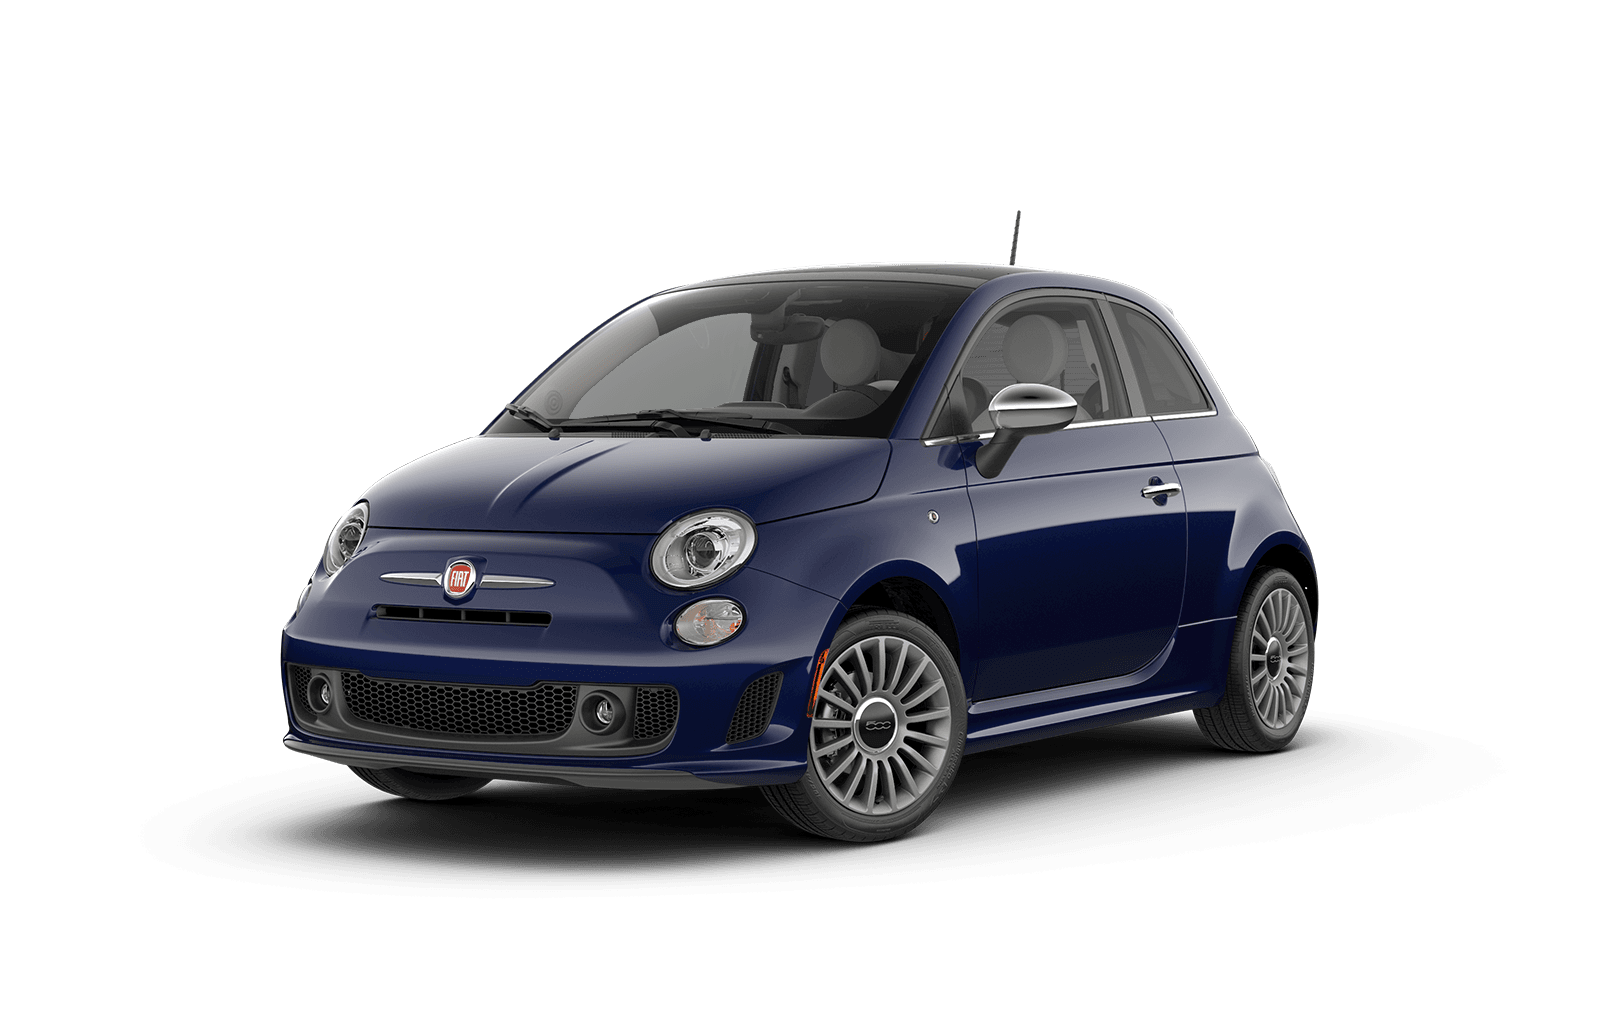 2018 FIAT 500 Full View in Navy Blue with Wheels